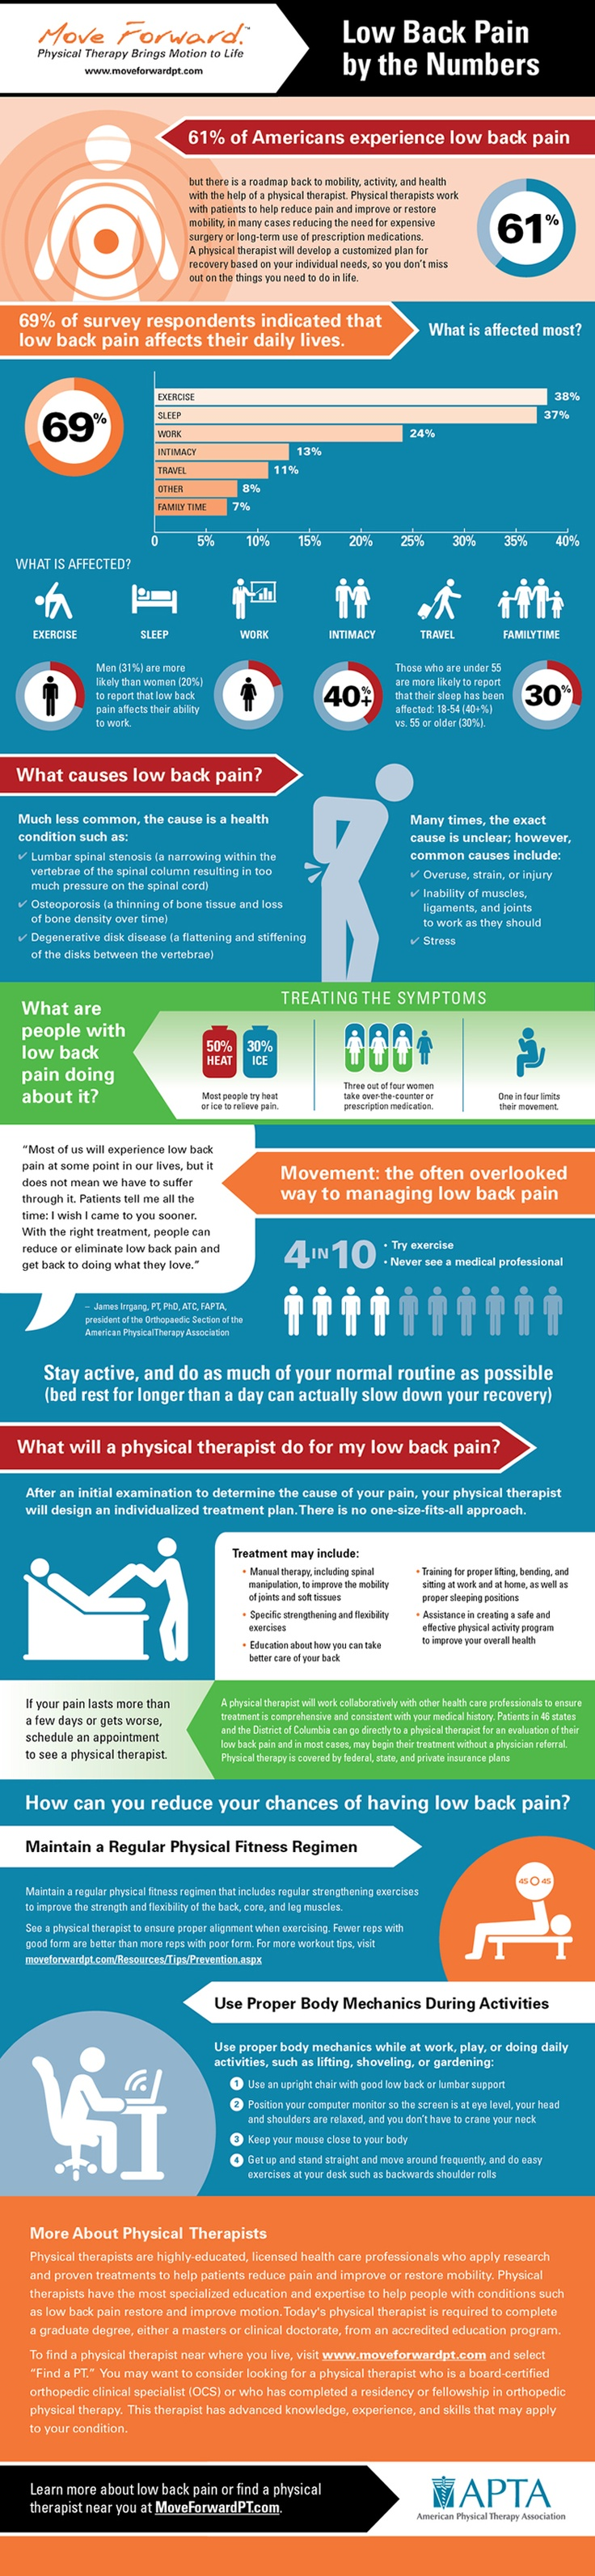 Low Back Pain Infographic by E-Rehab